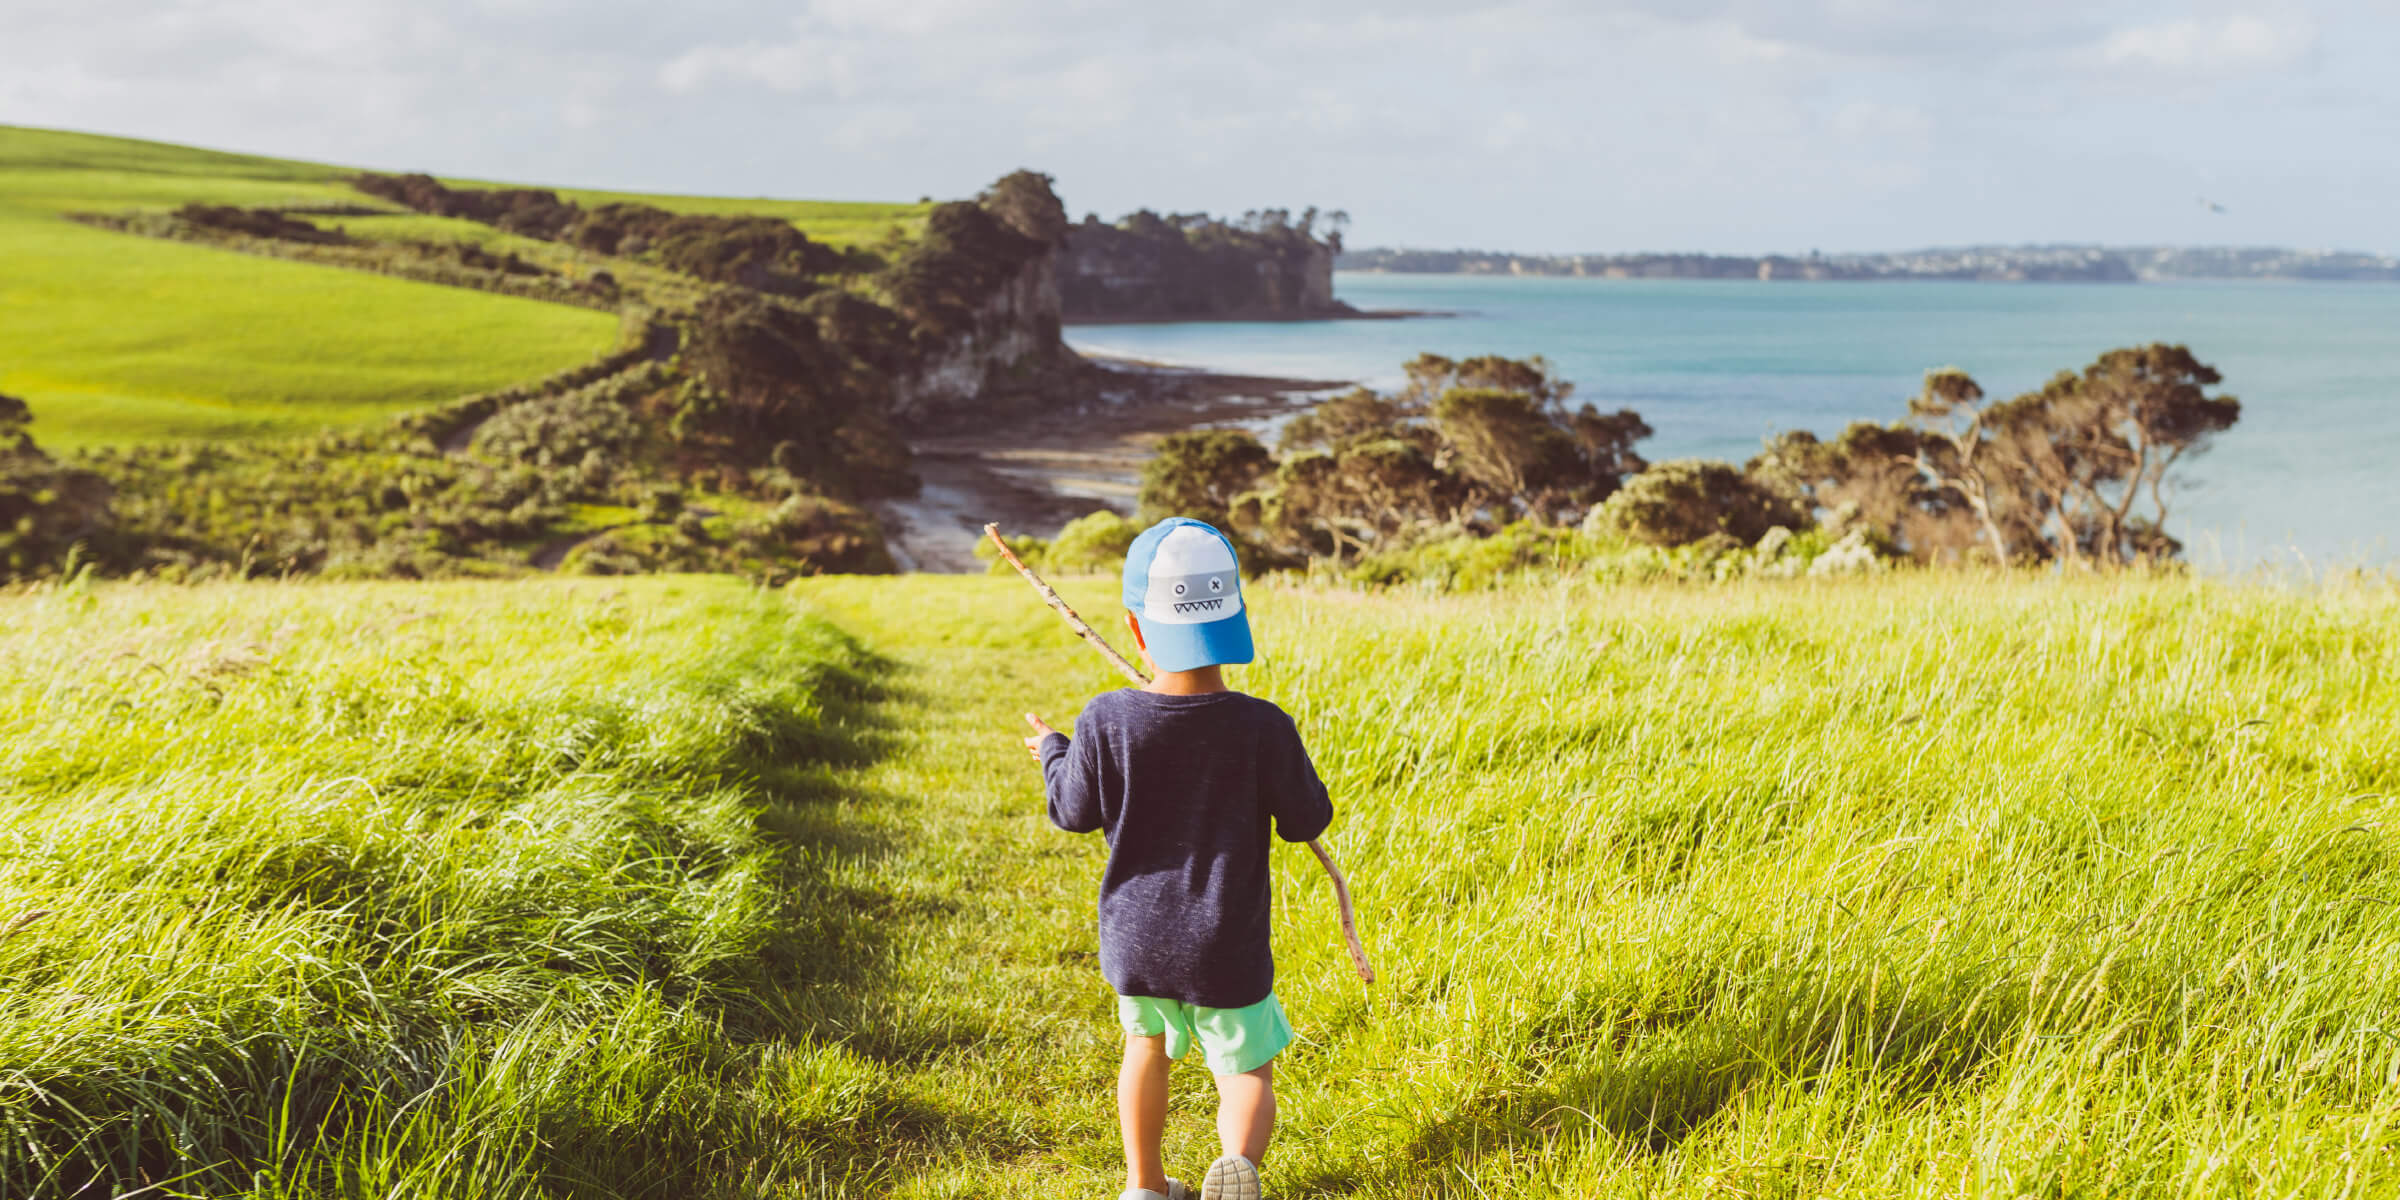 Child walking through park with sea views